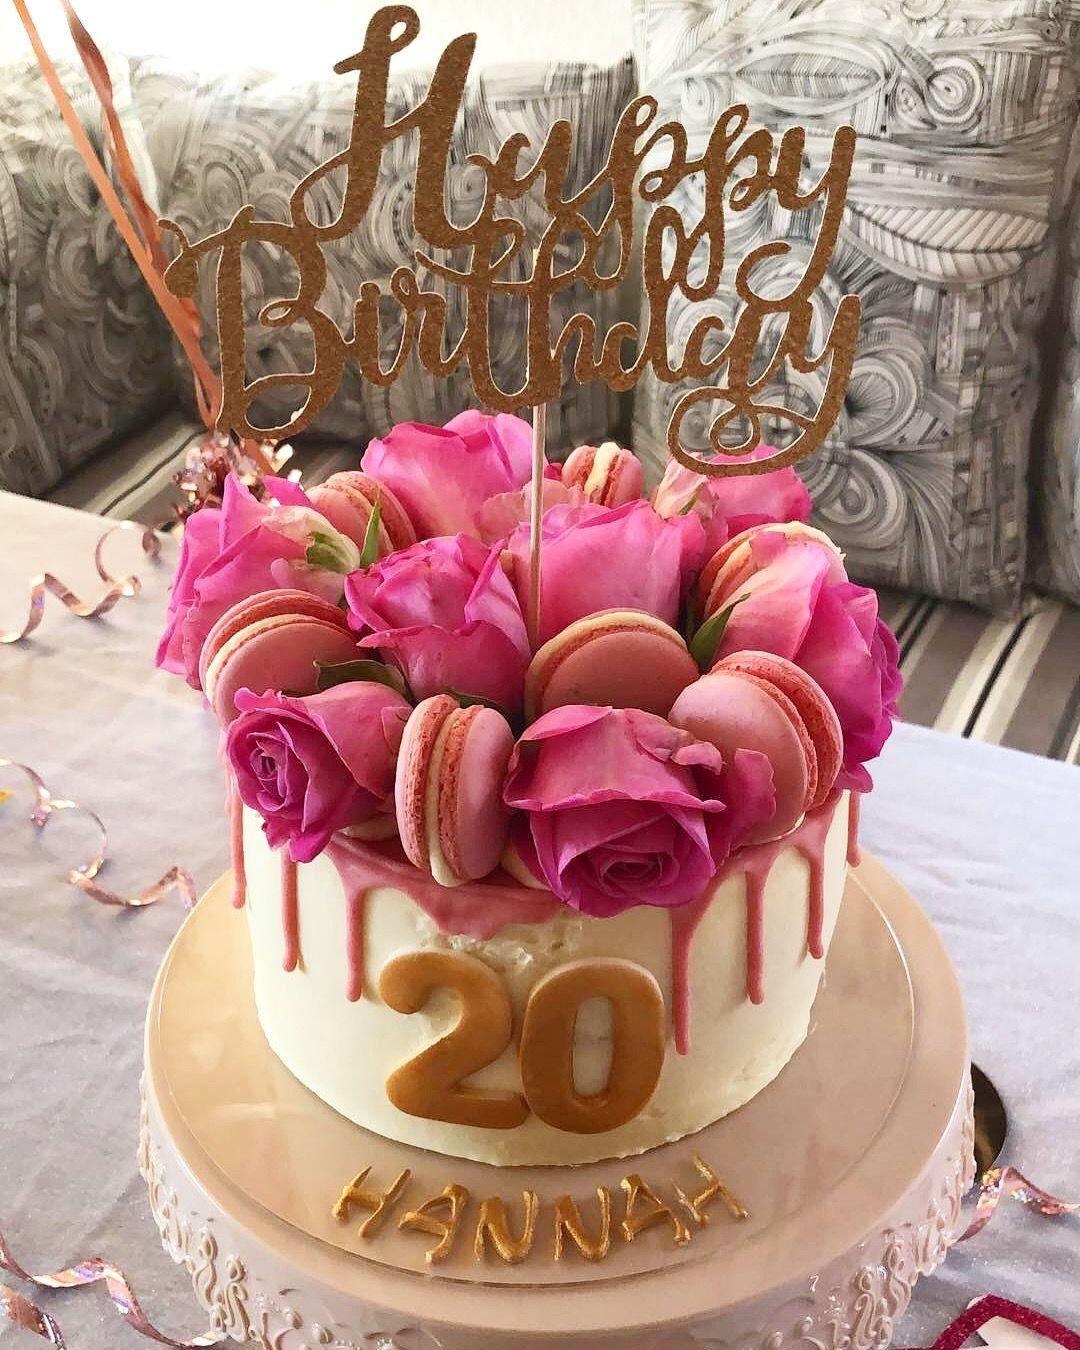 Pin By Sara Caiola On Numbers With Images 21st Birthday Cakes